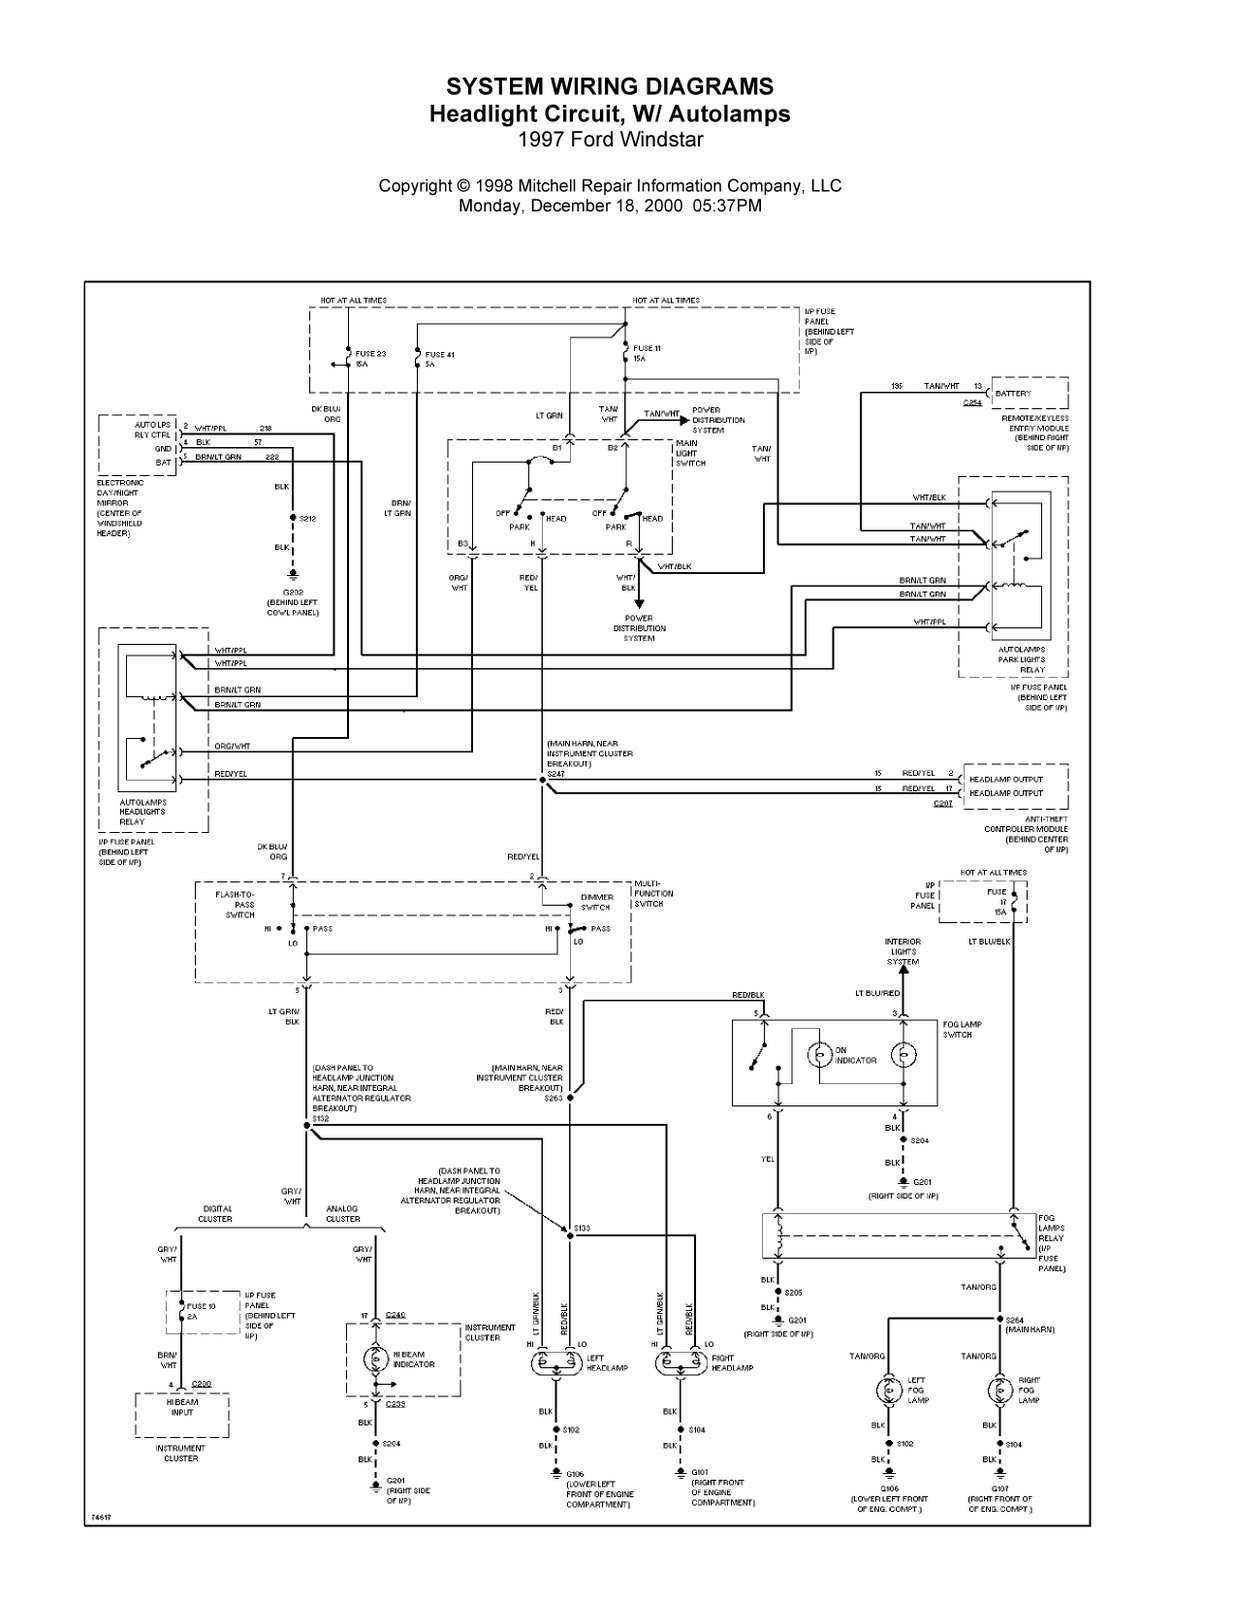 Ford Windstar Electrical Diagram Books Of Wiring 2003 Trailer 1997 Complete System Diagrams 2002